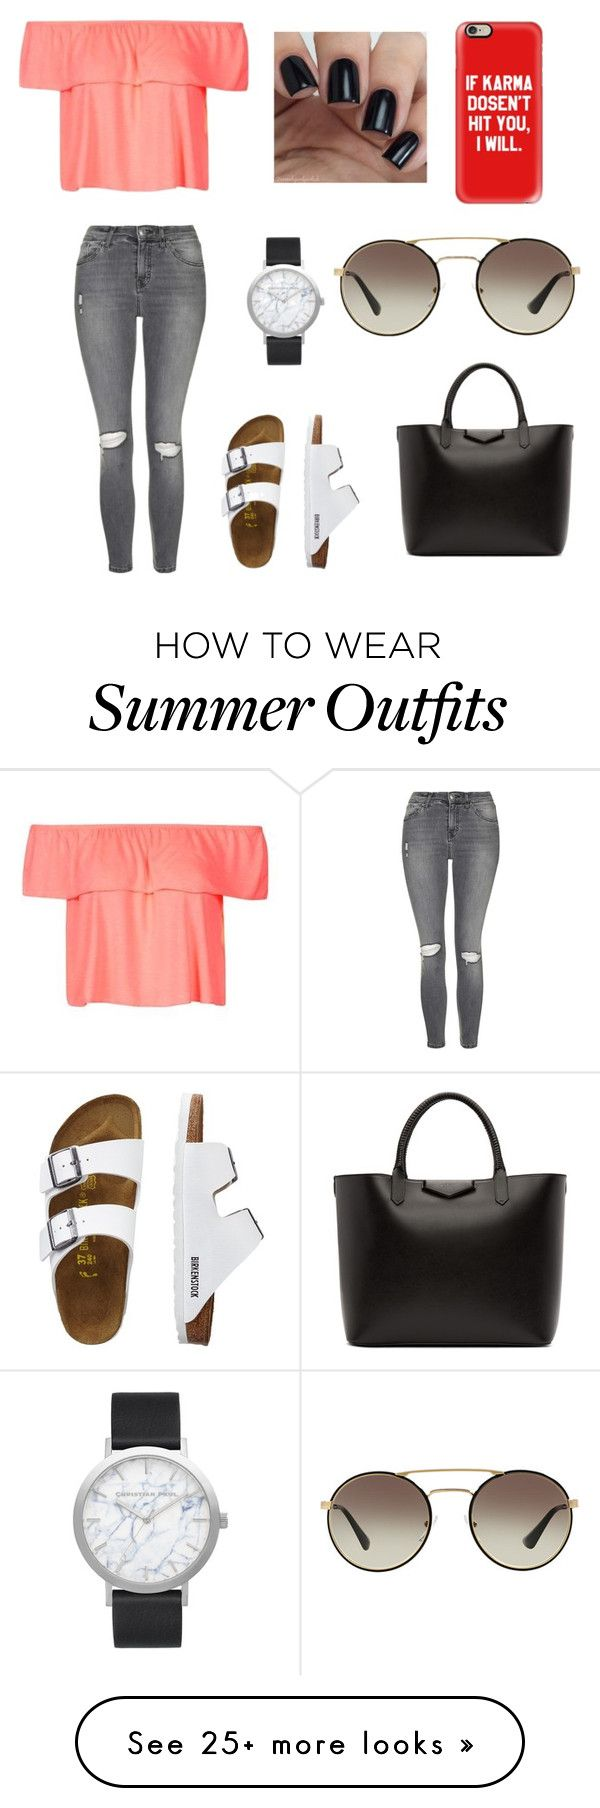 """Summer chic outfit"" by imsofaancy on Polyvore featuring Topshop, Elwood, Givenchy, TravelSmith, Prada and Casetify"